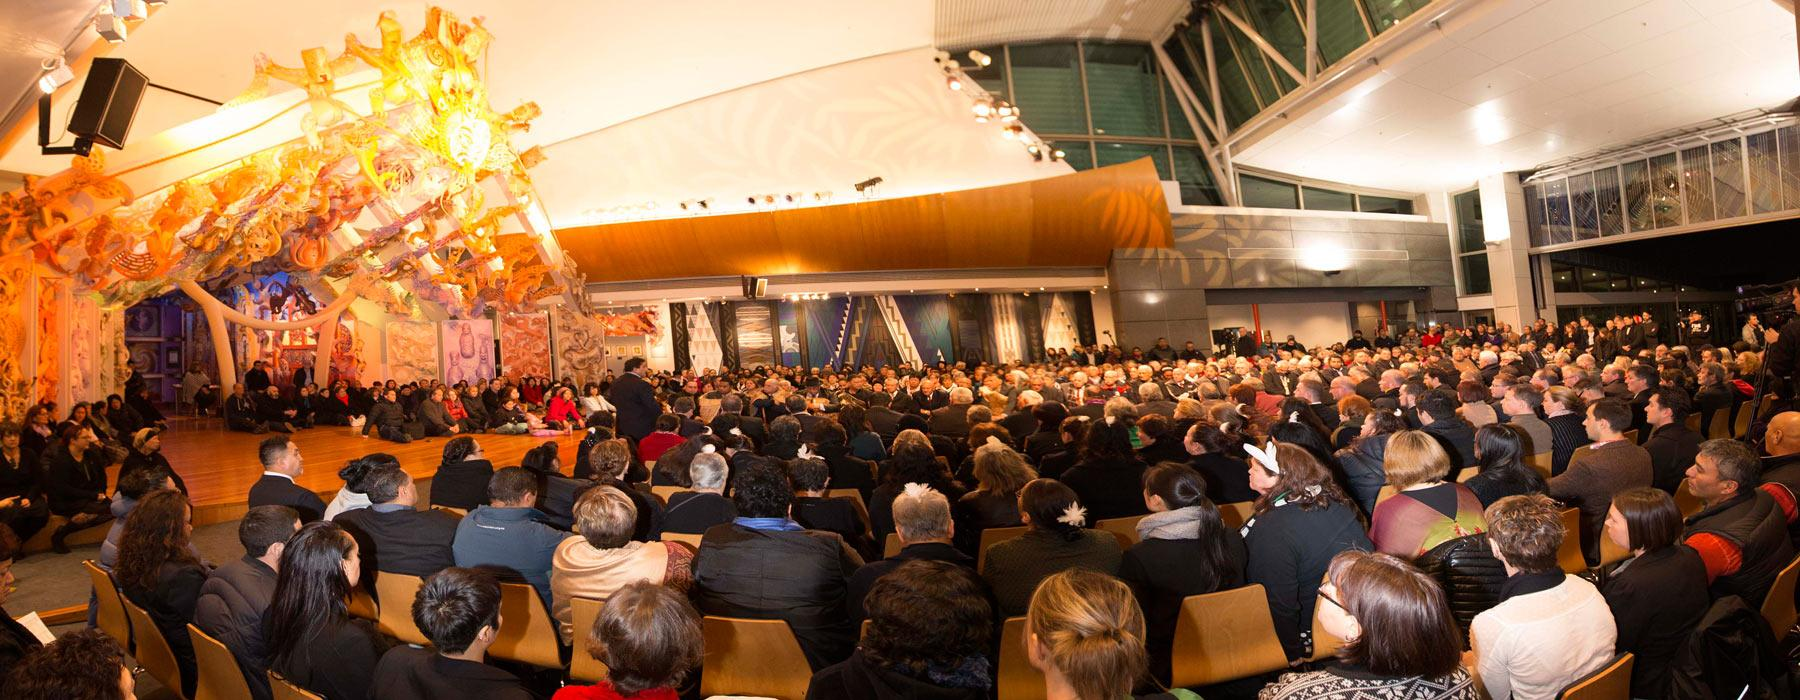 Ngāti Toa opening ceremony, 2014. Photograph by Norm Heke. Te Papa